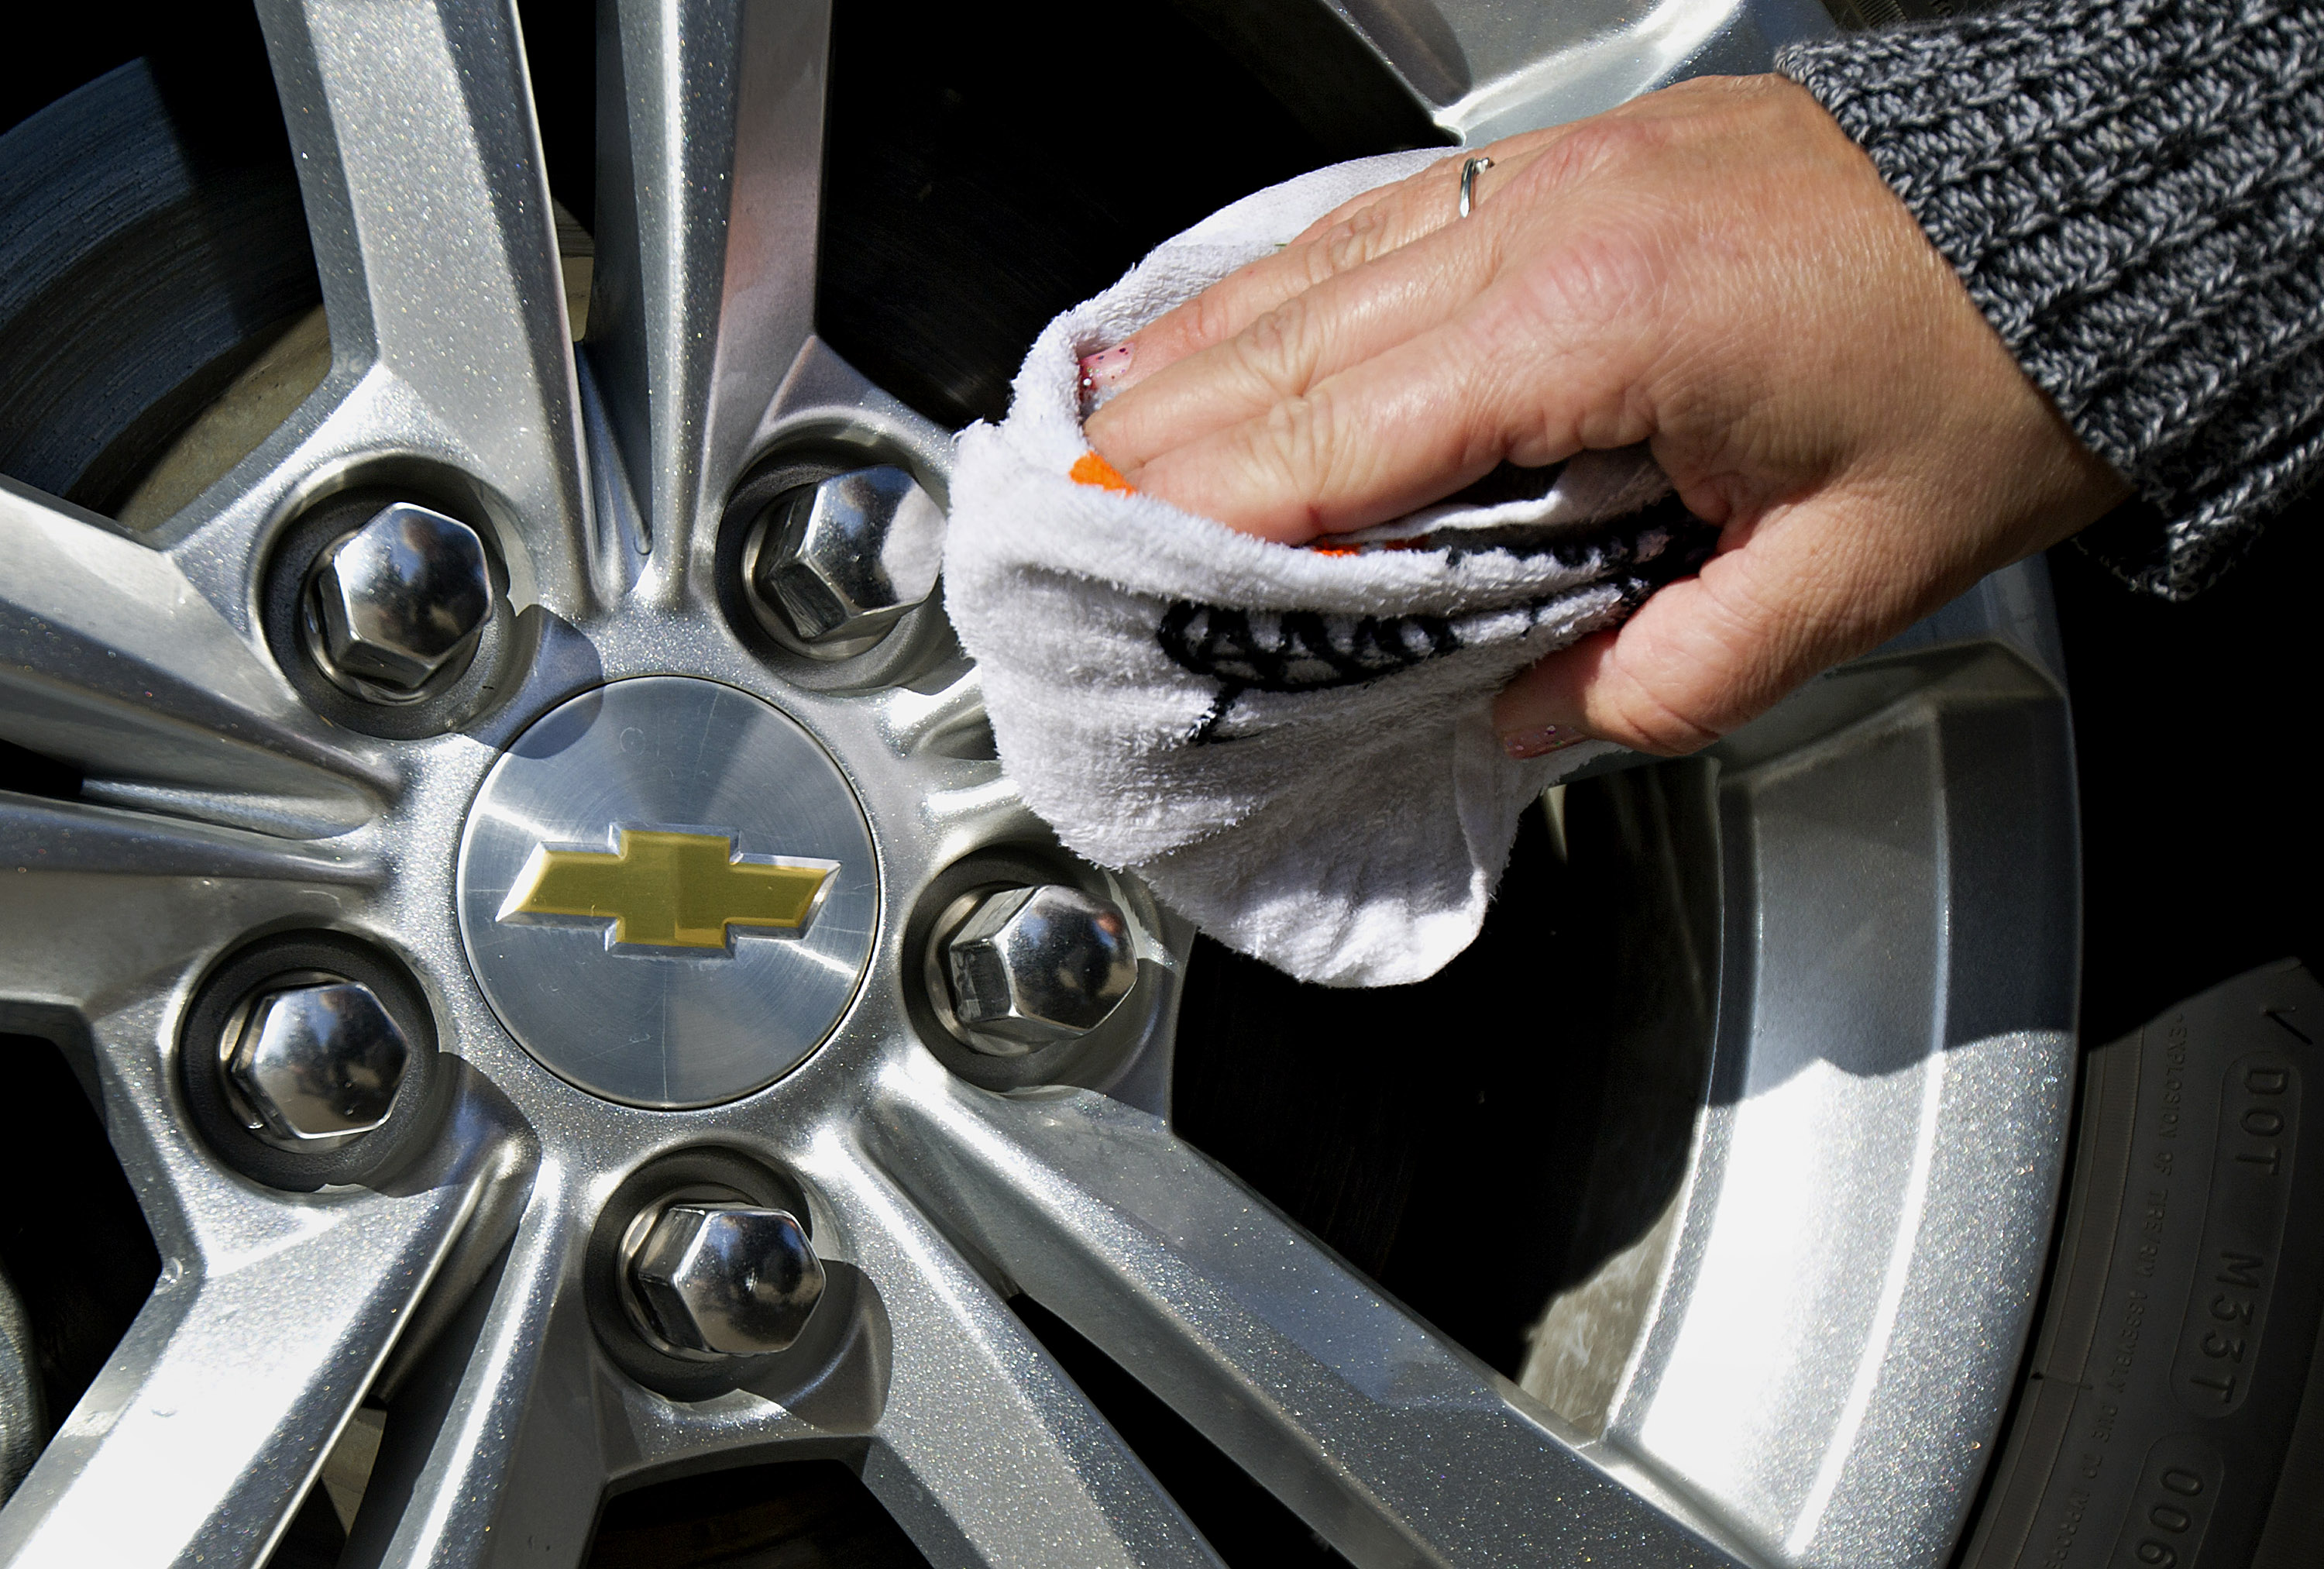 Customer Tracy Boehm wipes the wheel of her 2013 Chevy Equinox